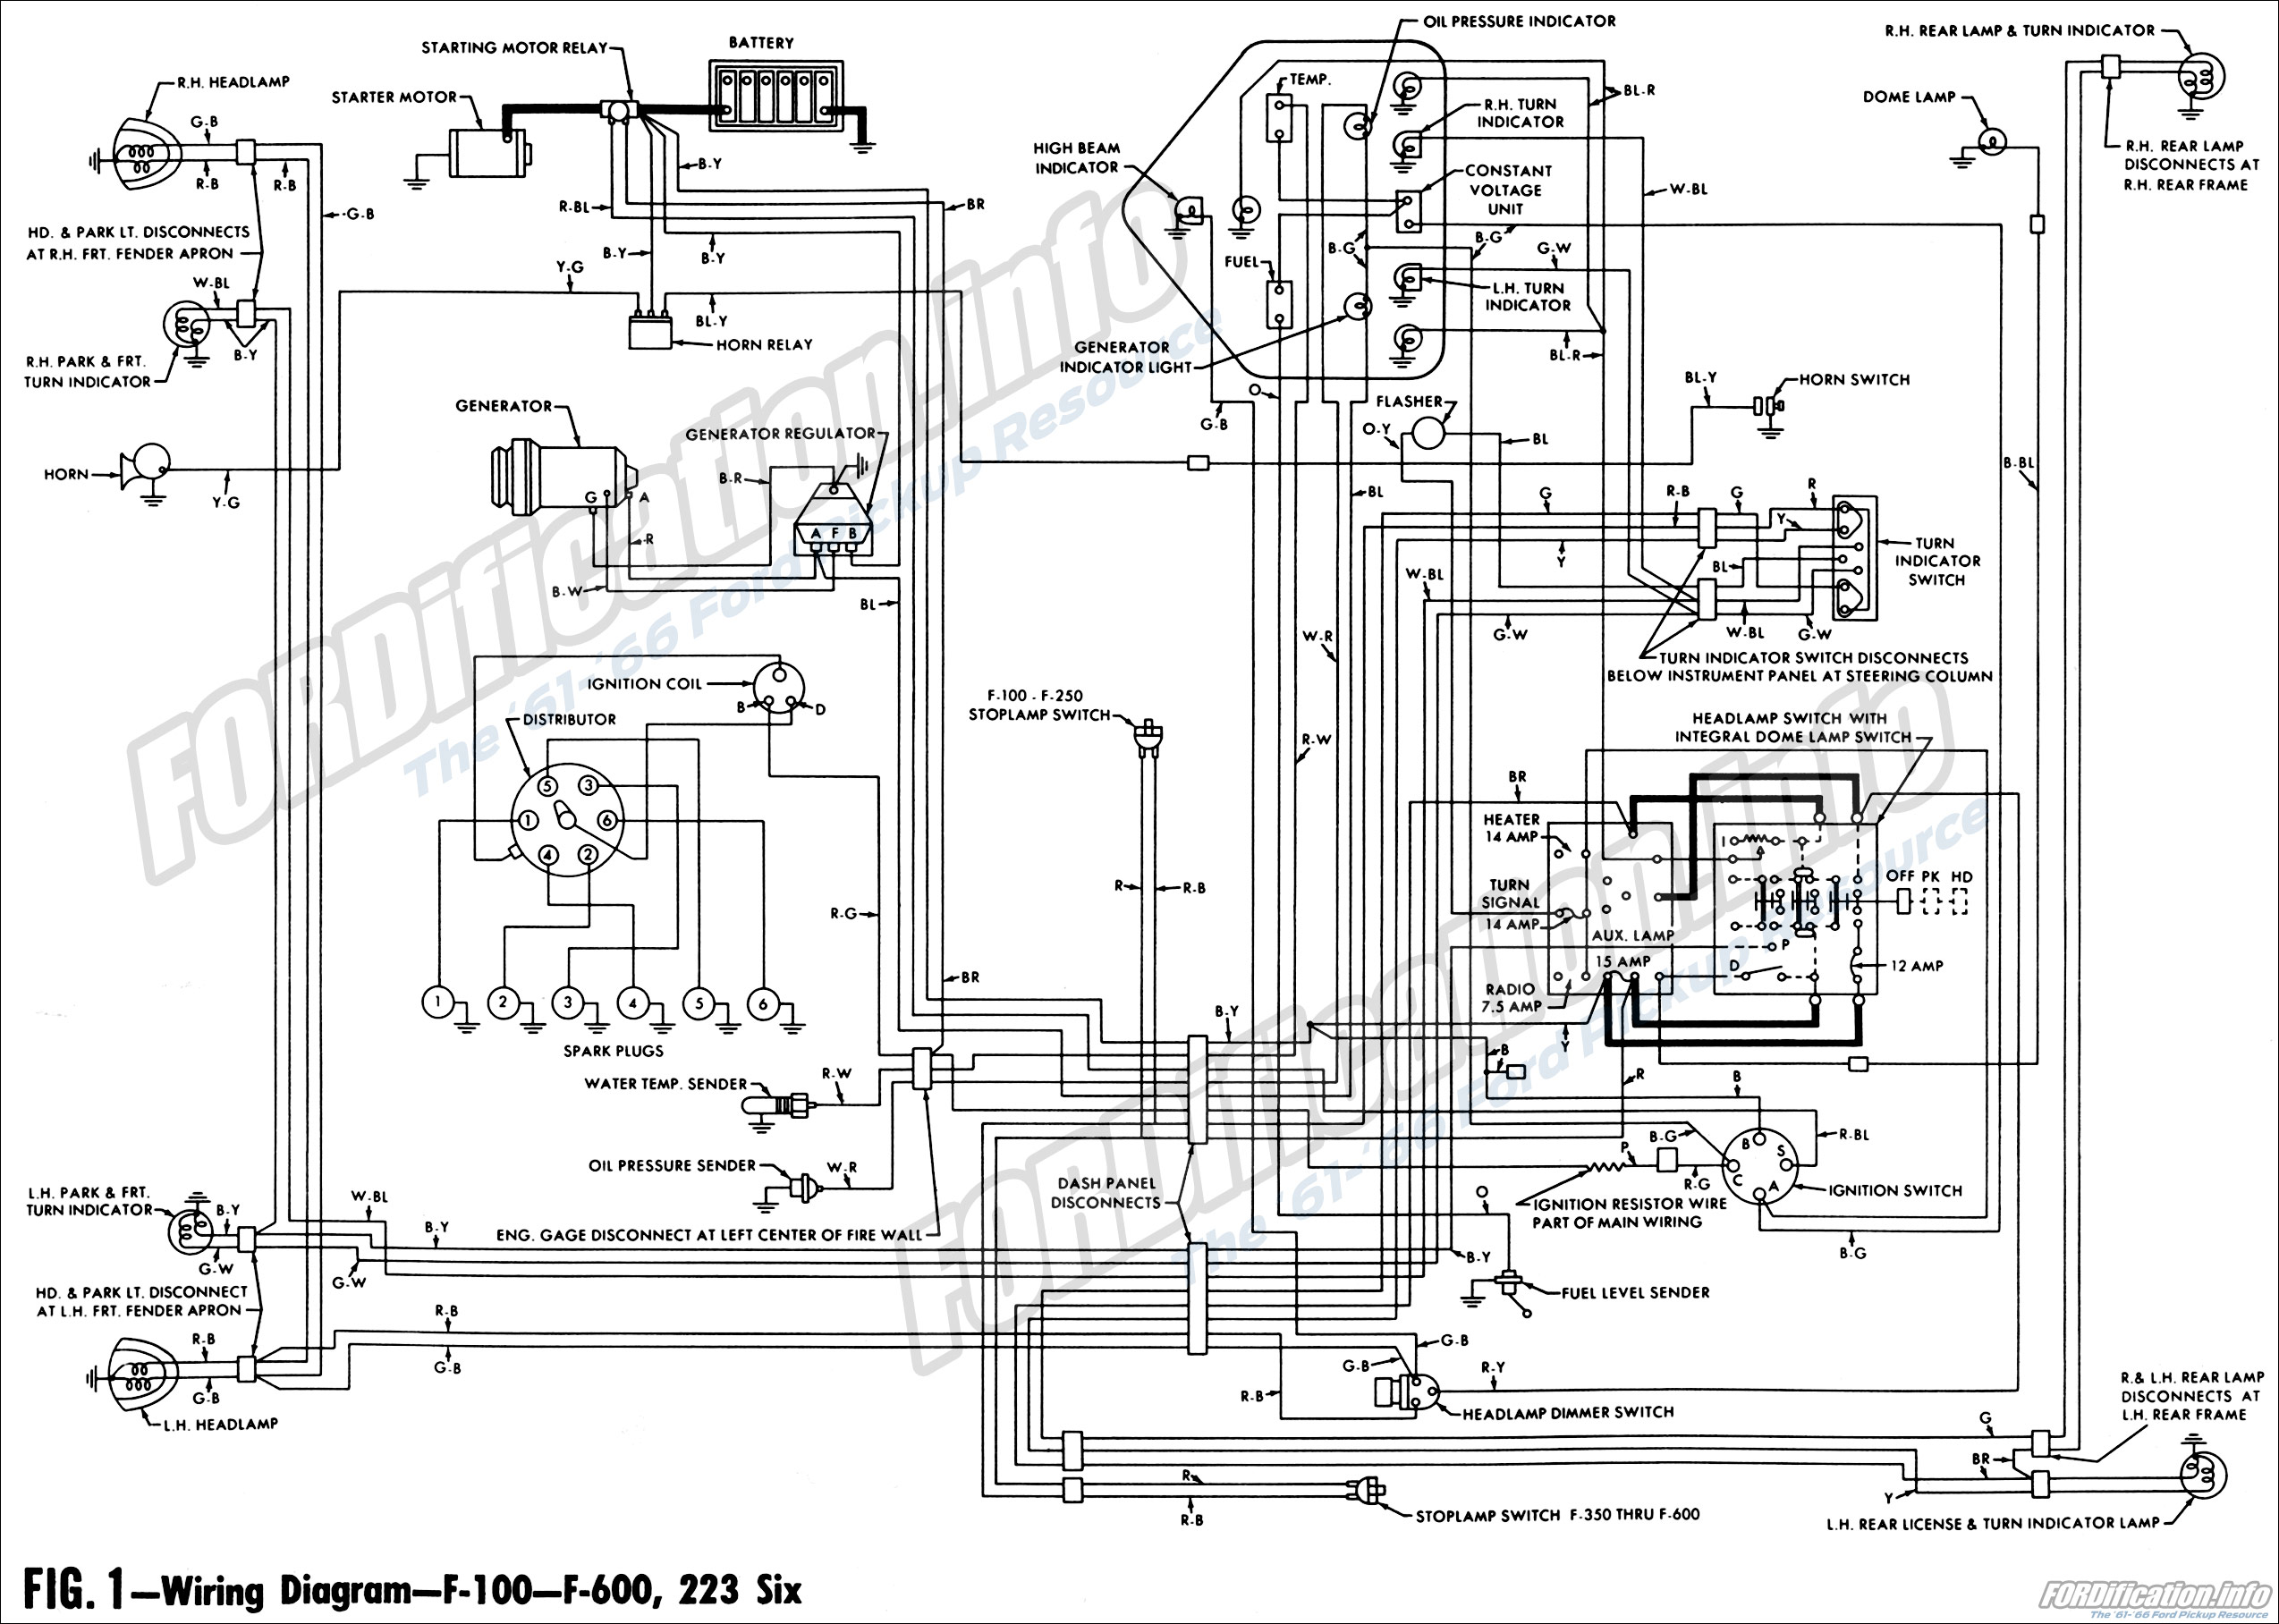 Ford Truck Wiring Diagrams : Ford truck wiring diagrams fordification the